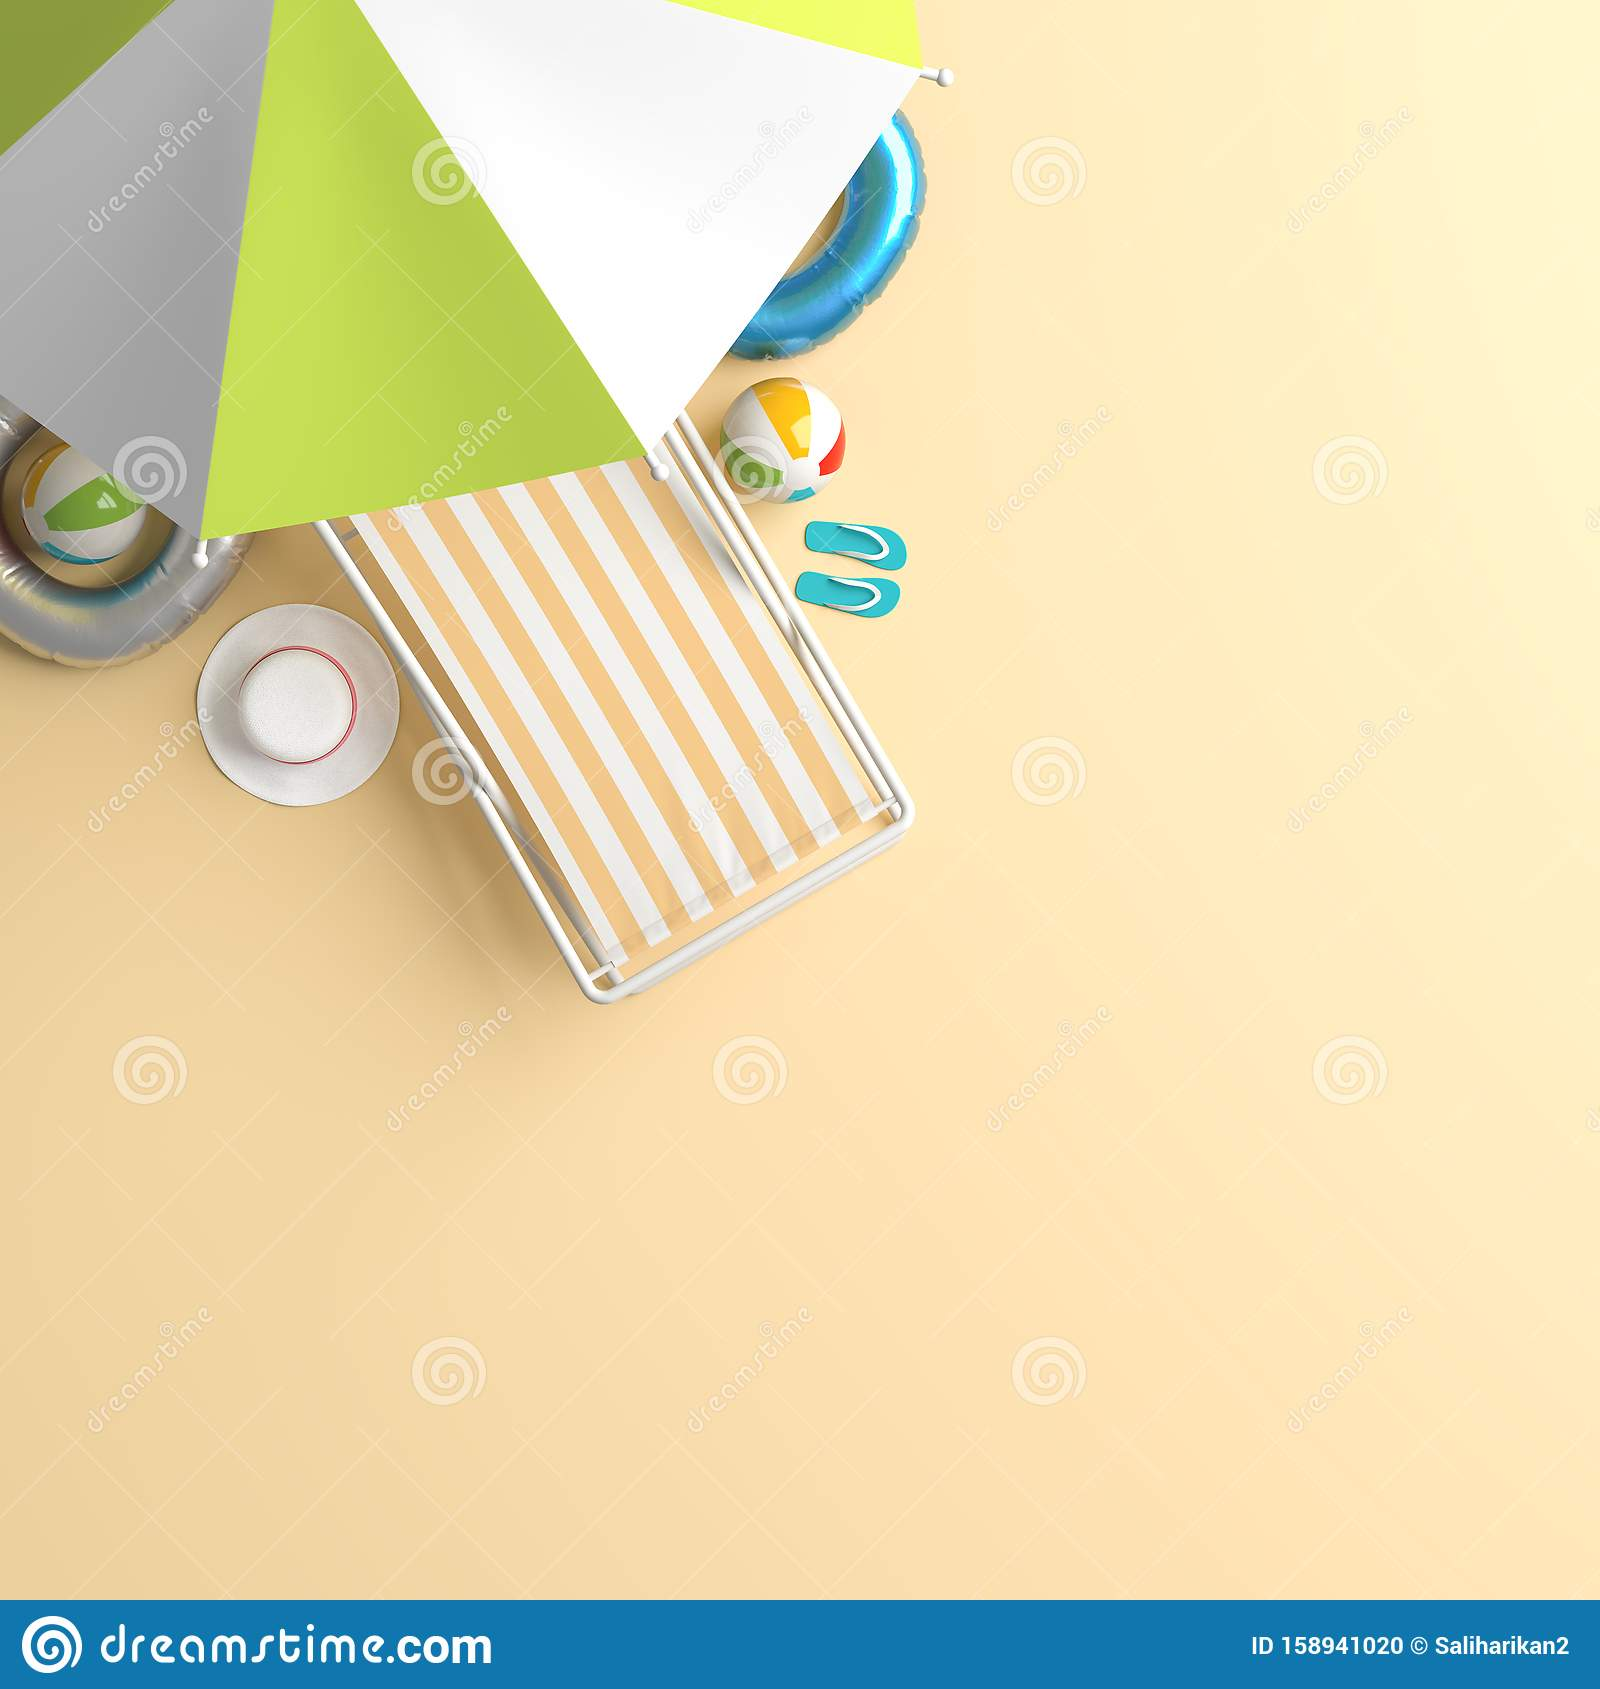 Travel Concept Background Design With Sea Bed And Umbrella